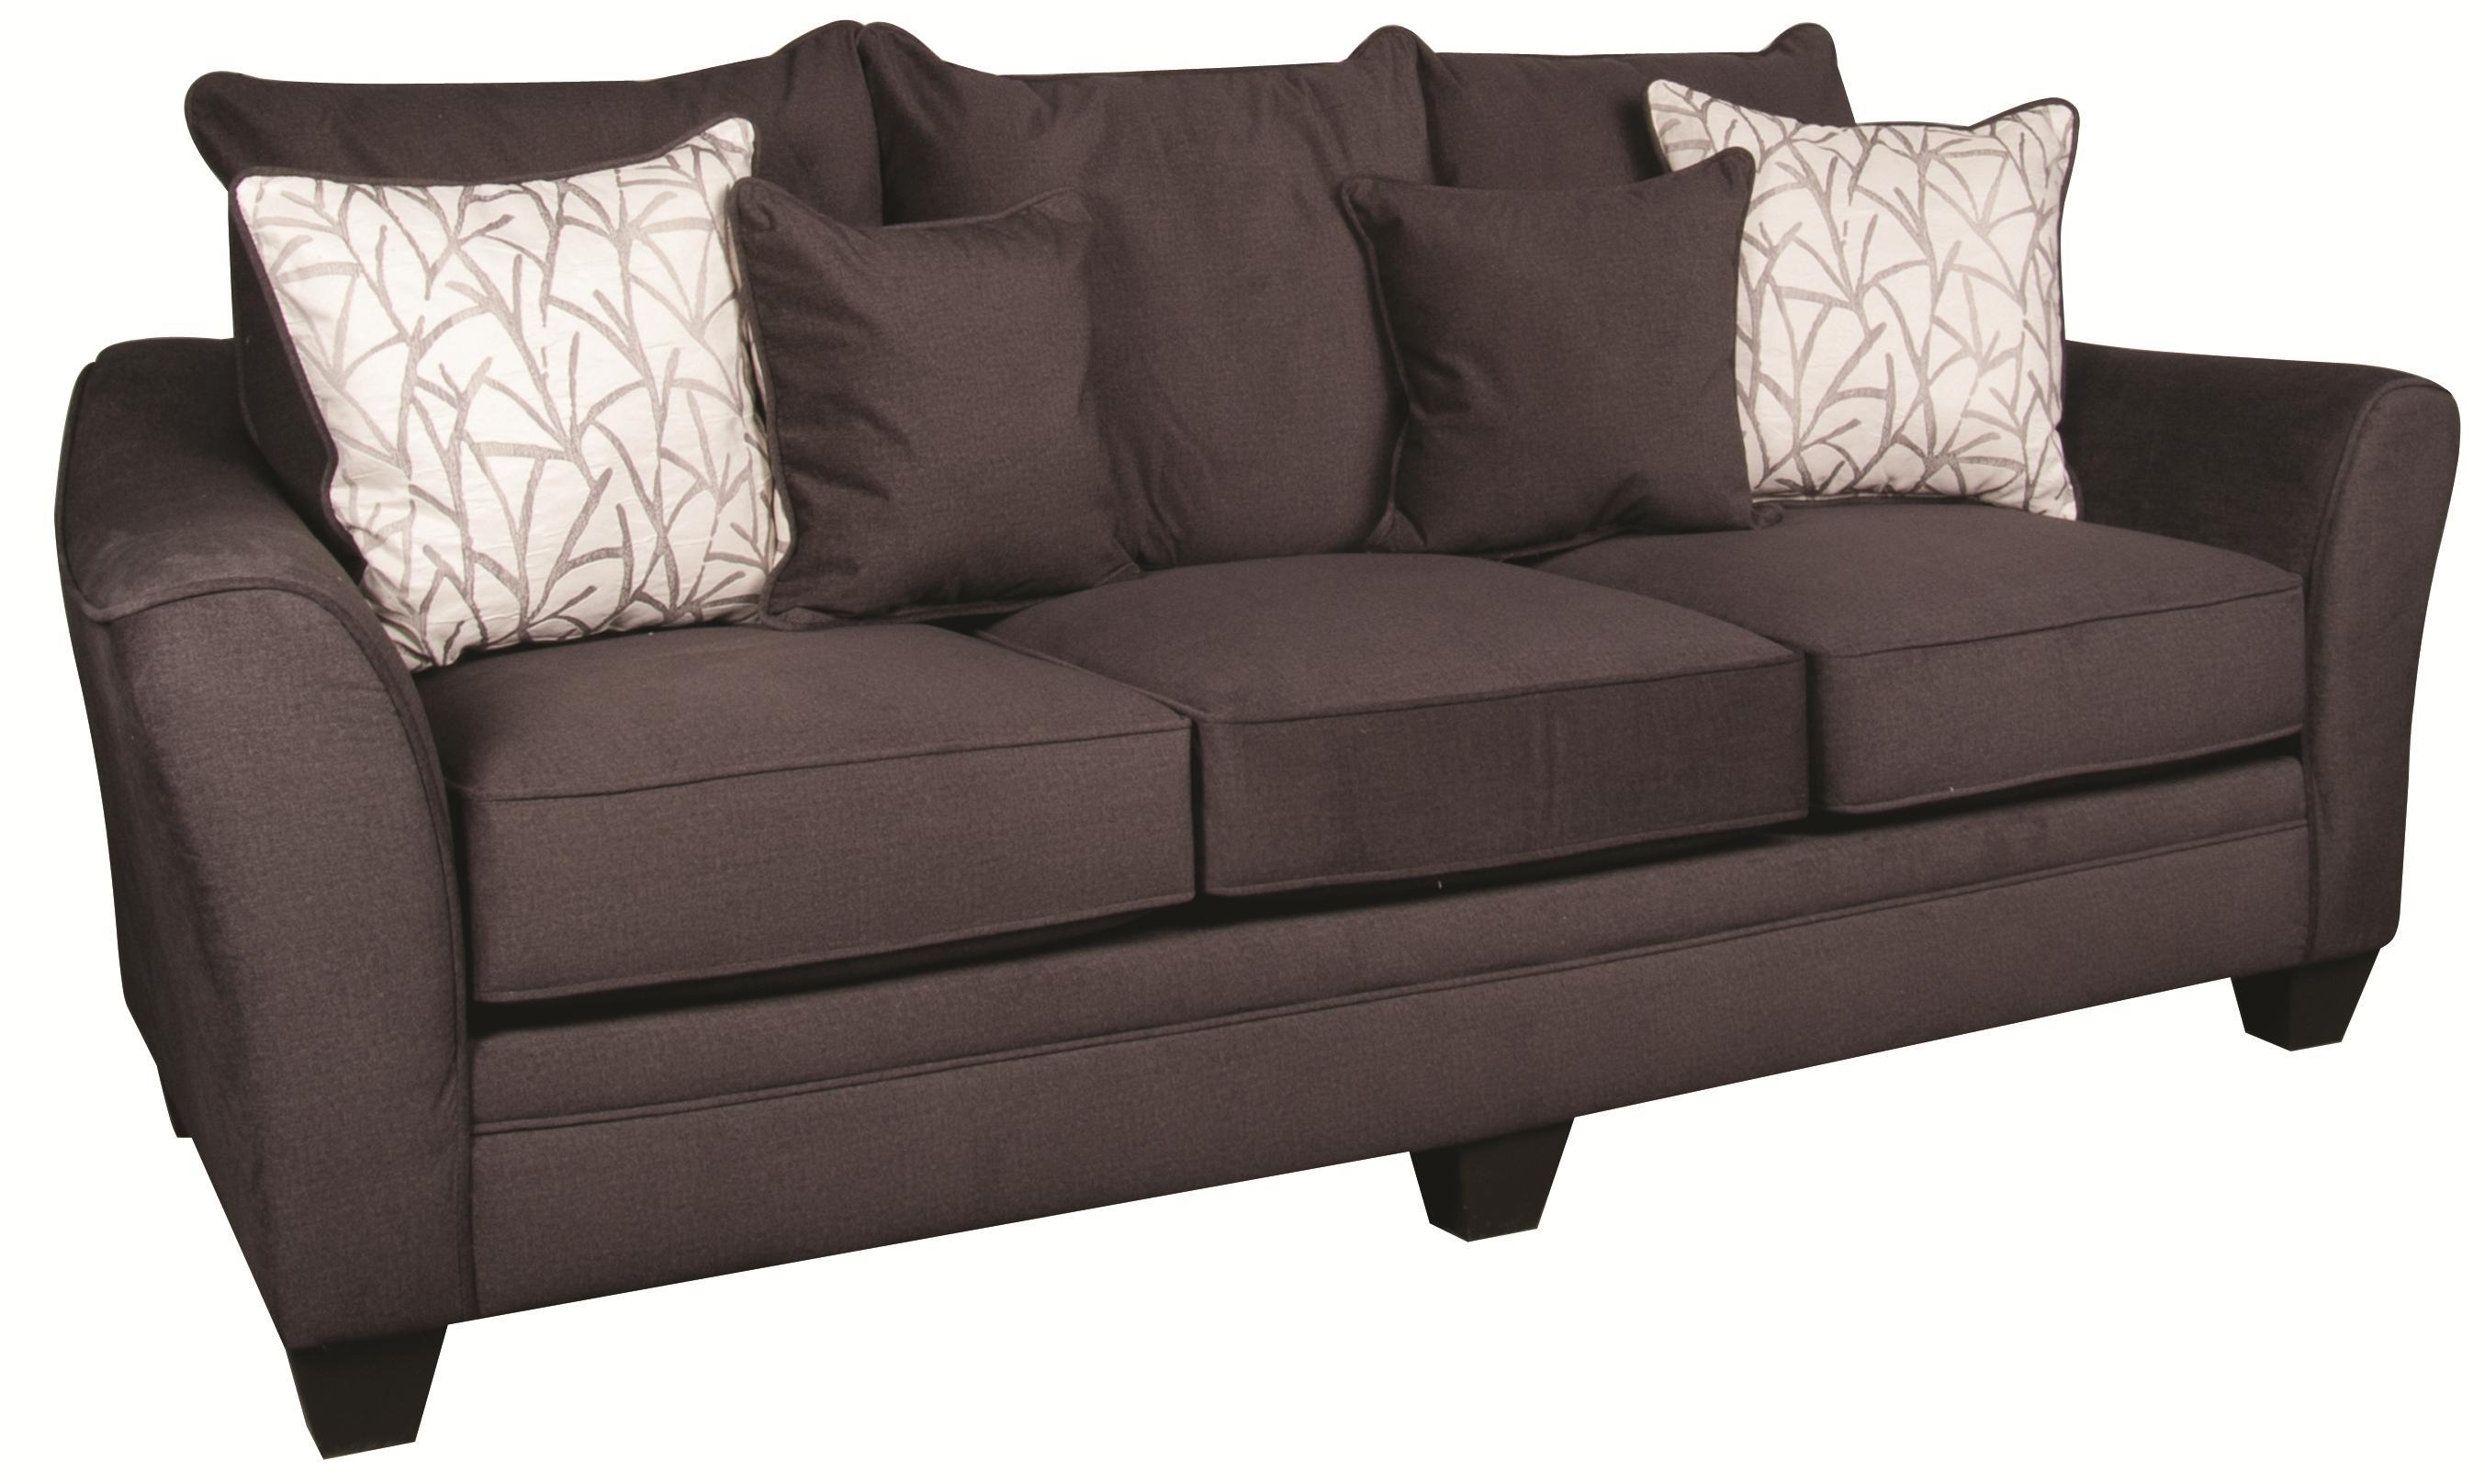 Rachel sofa morris home sofa Morris home furniture hours